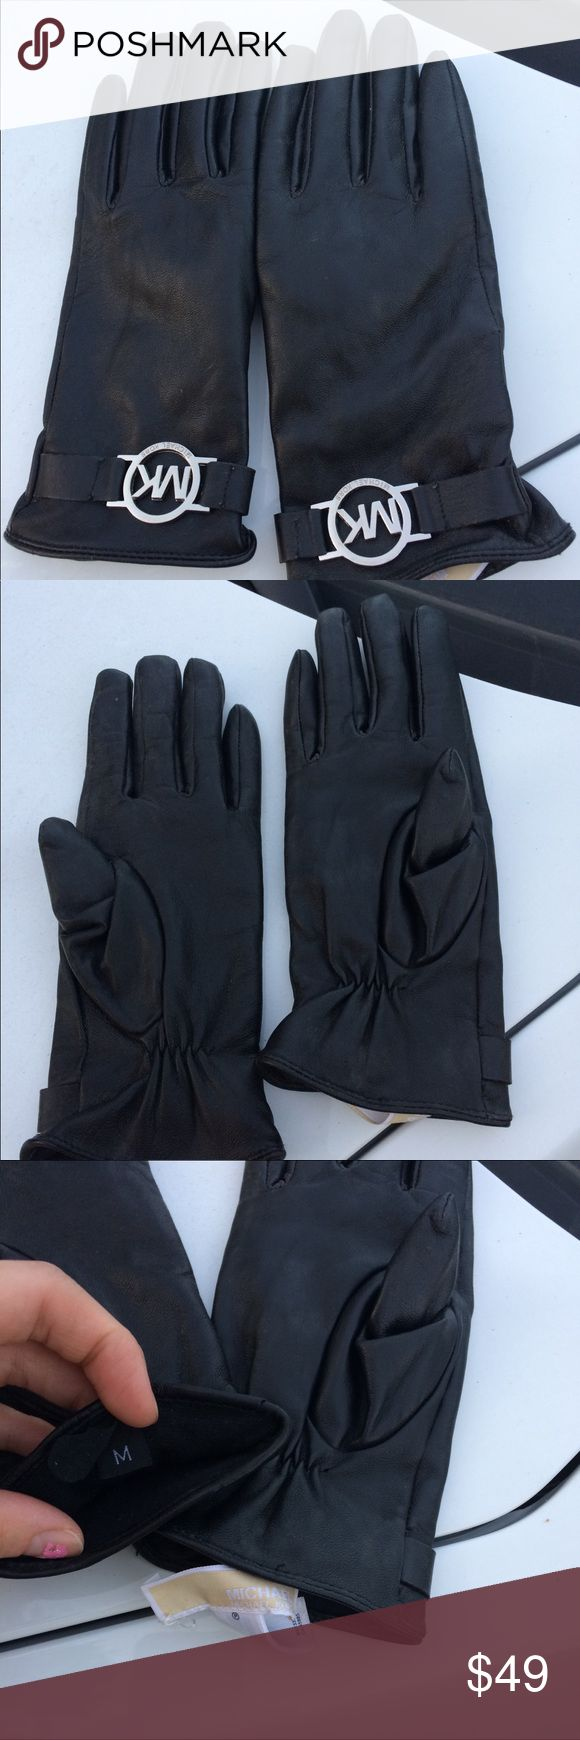 Michael Kors black leather gloves Buttery soft black leather. EUC. Worn once. Silver metal logo charms on outsides. Size M KORS Michael Kors Accessories Gloves & Mittens